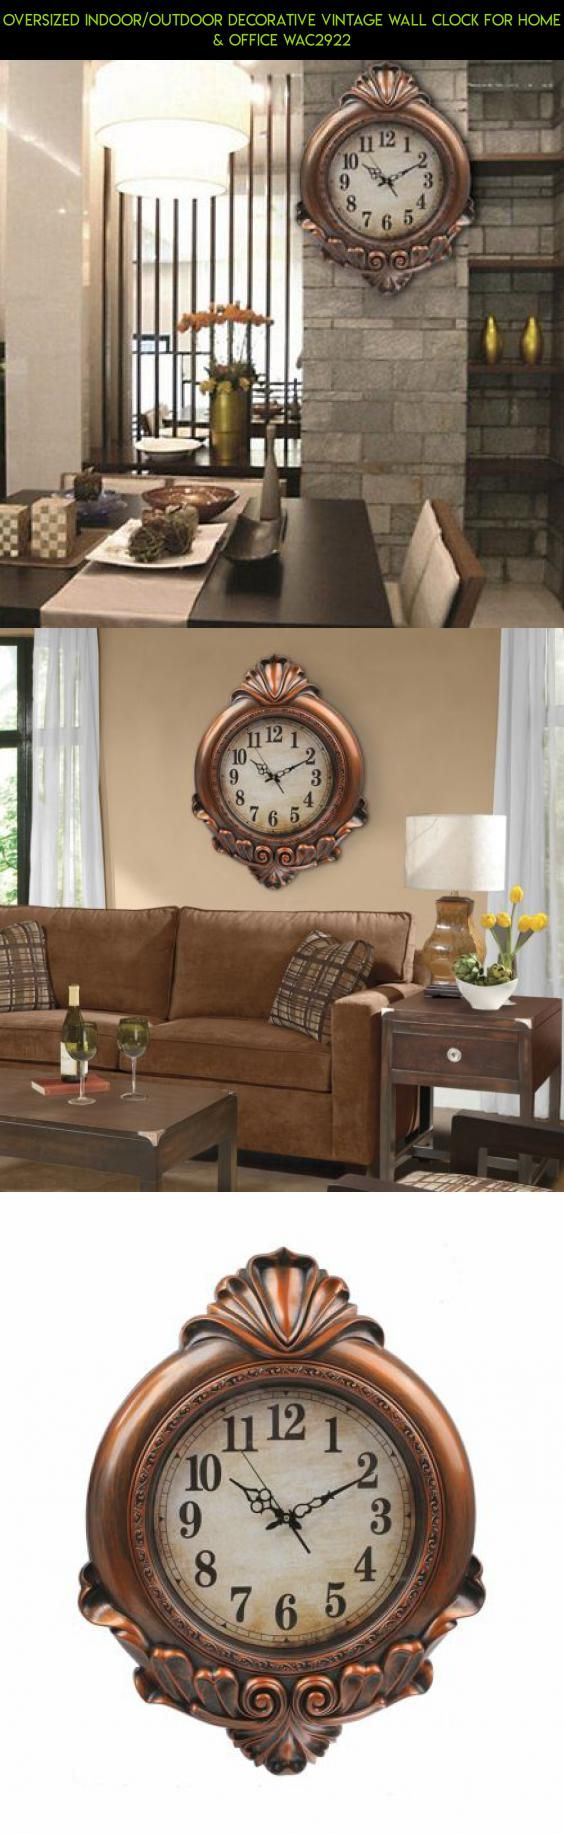 Best 25 outdoor wall clocks ideas on pinterest pandora oversized indooroutdoor decorative vintage wall clock for home office wac2922 kit amipublicfo Image collections